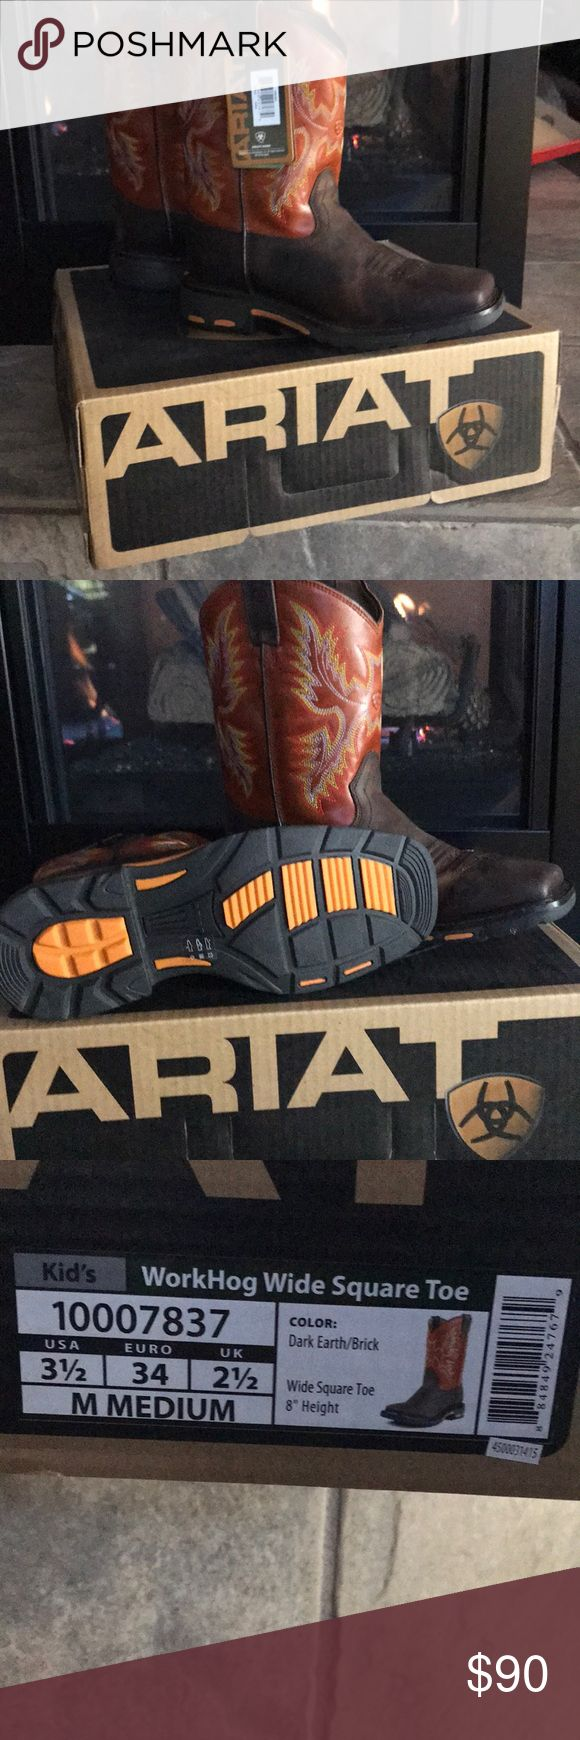 Brand new Ariat leather cowboy boots Brand new, never worn kid's leather cowboy boots.  This boot has a removable booster bed to provide extra room for growing feet, allowing kids to wear the shoe longer, as their foot grows!  This extends the life of the shoe!!! Ariat Shoes Boots